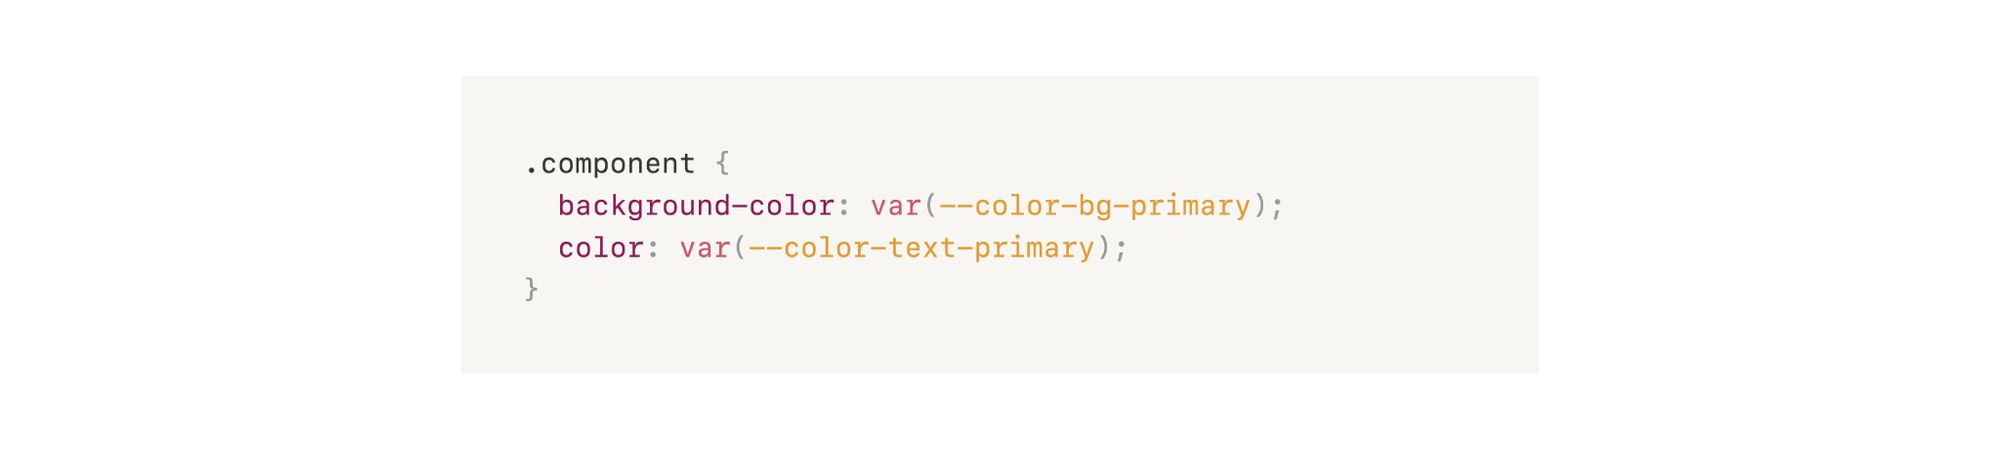 Image of code applying the colors to components